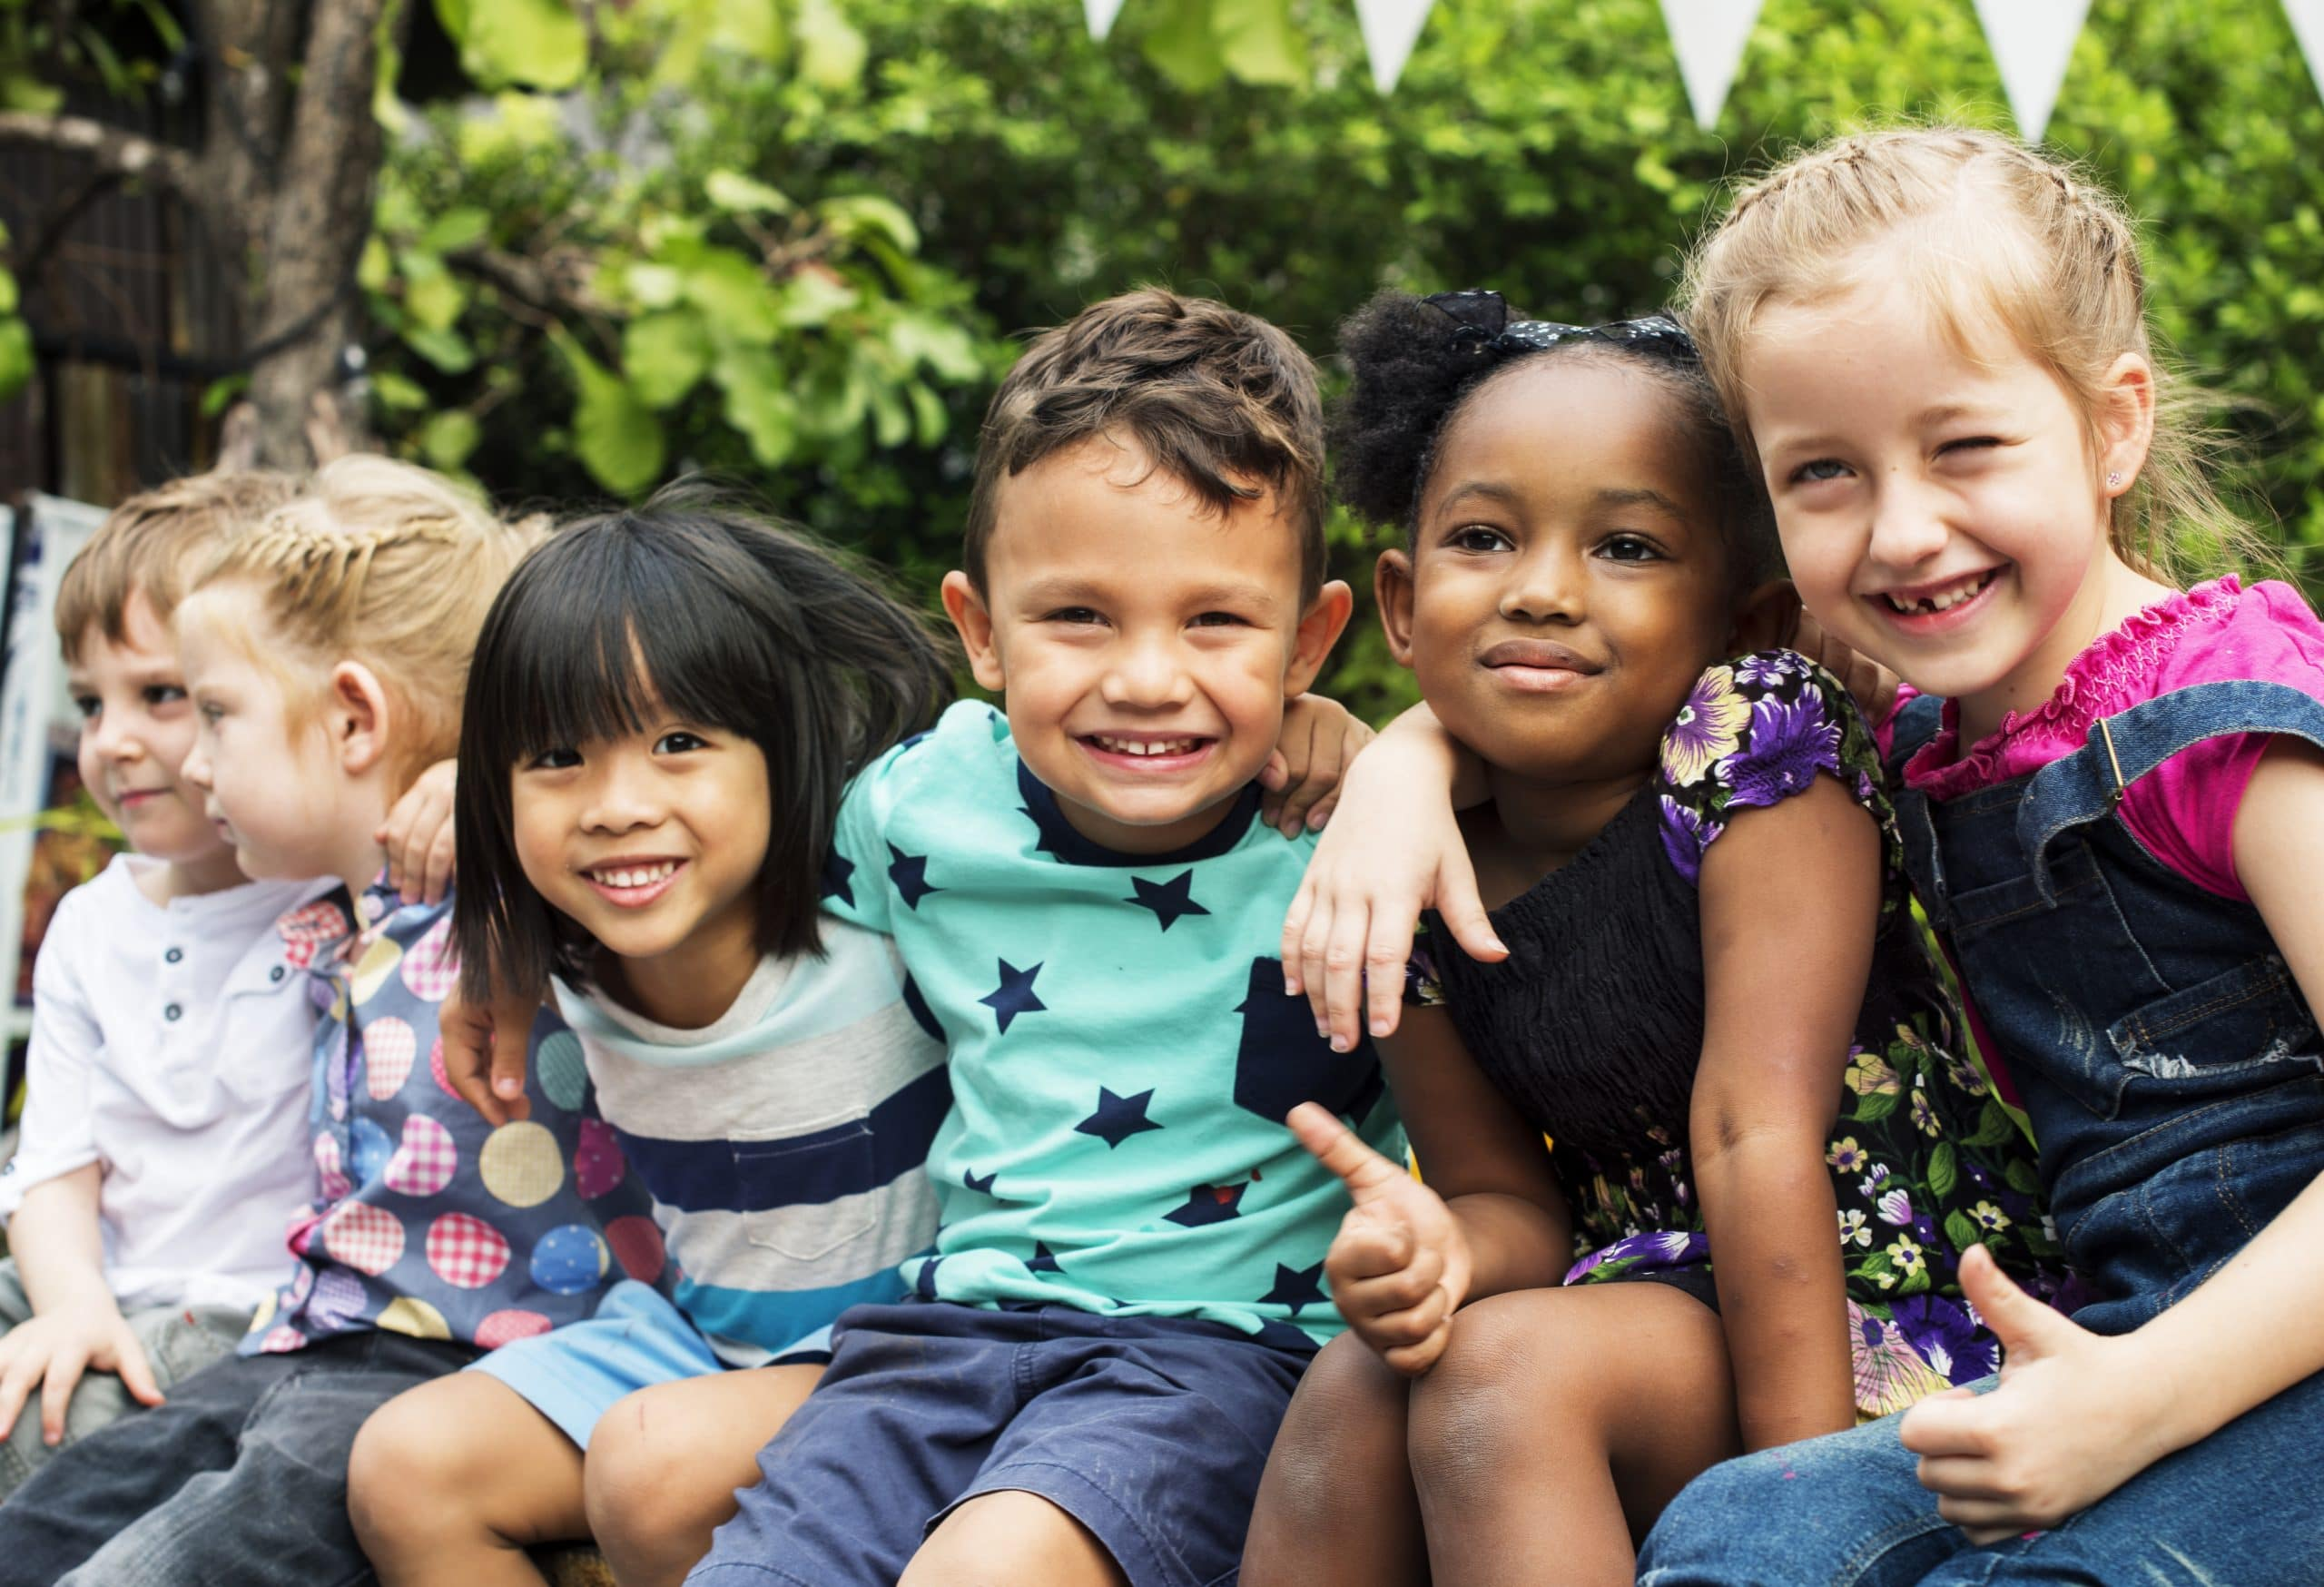 Diversity and Equality Activities for Young Children